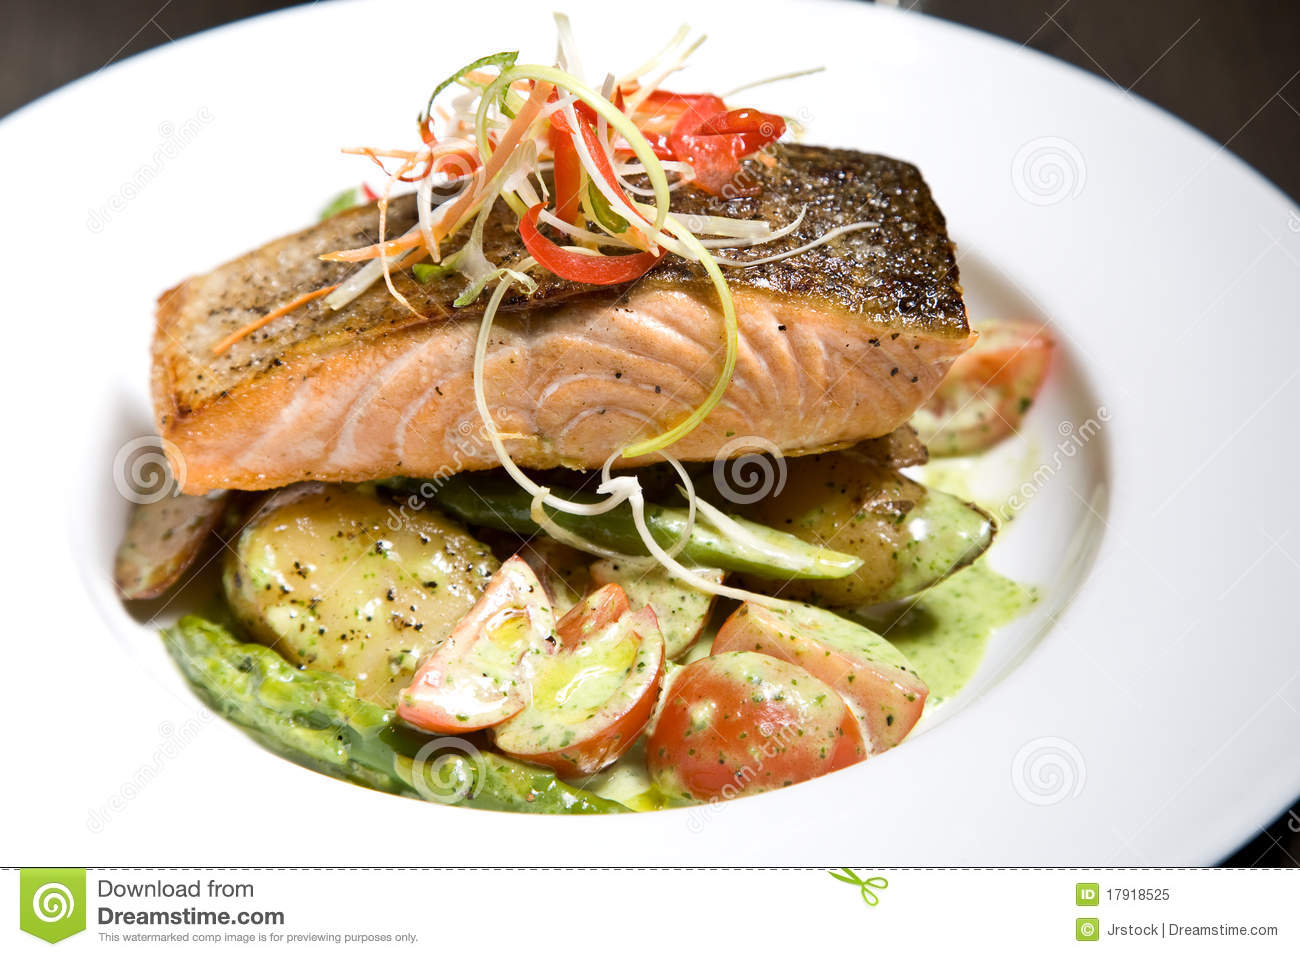 Gourmet Dinner Royalty Free Stock Photo - Image: 17918525